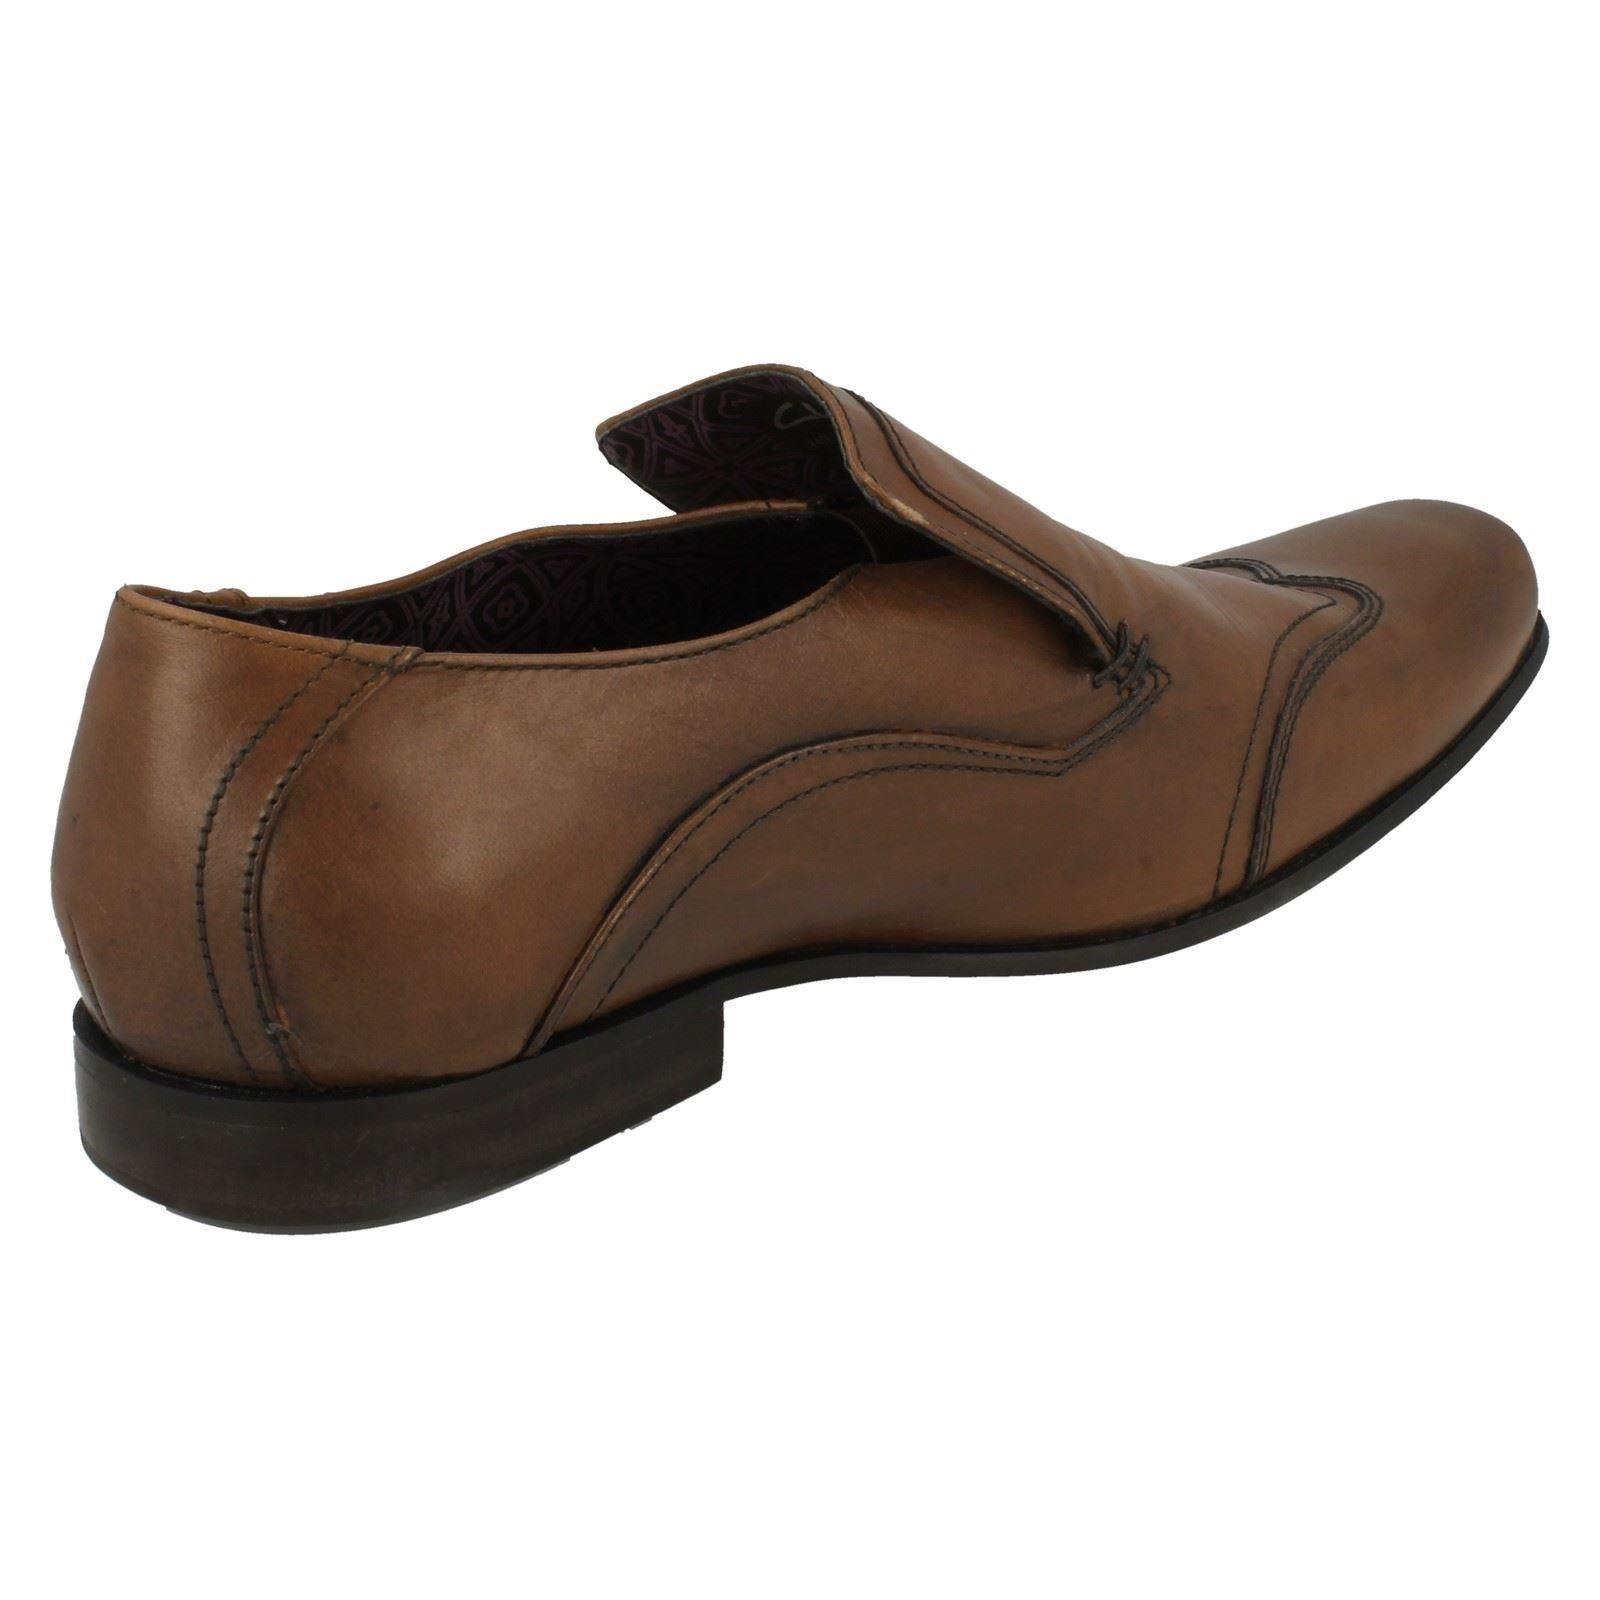 Formal in 'fiction Shoes pelle Clip' tabacco di Clarks Slip On Mens 7qwTPxx